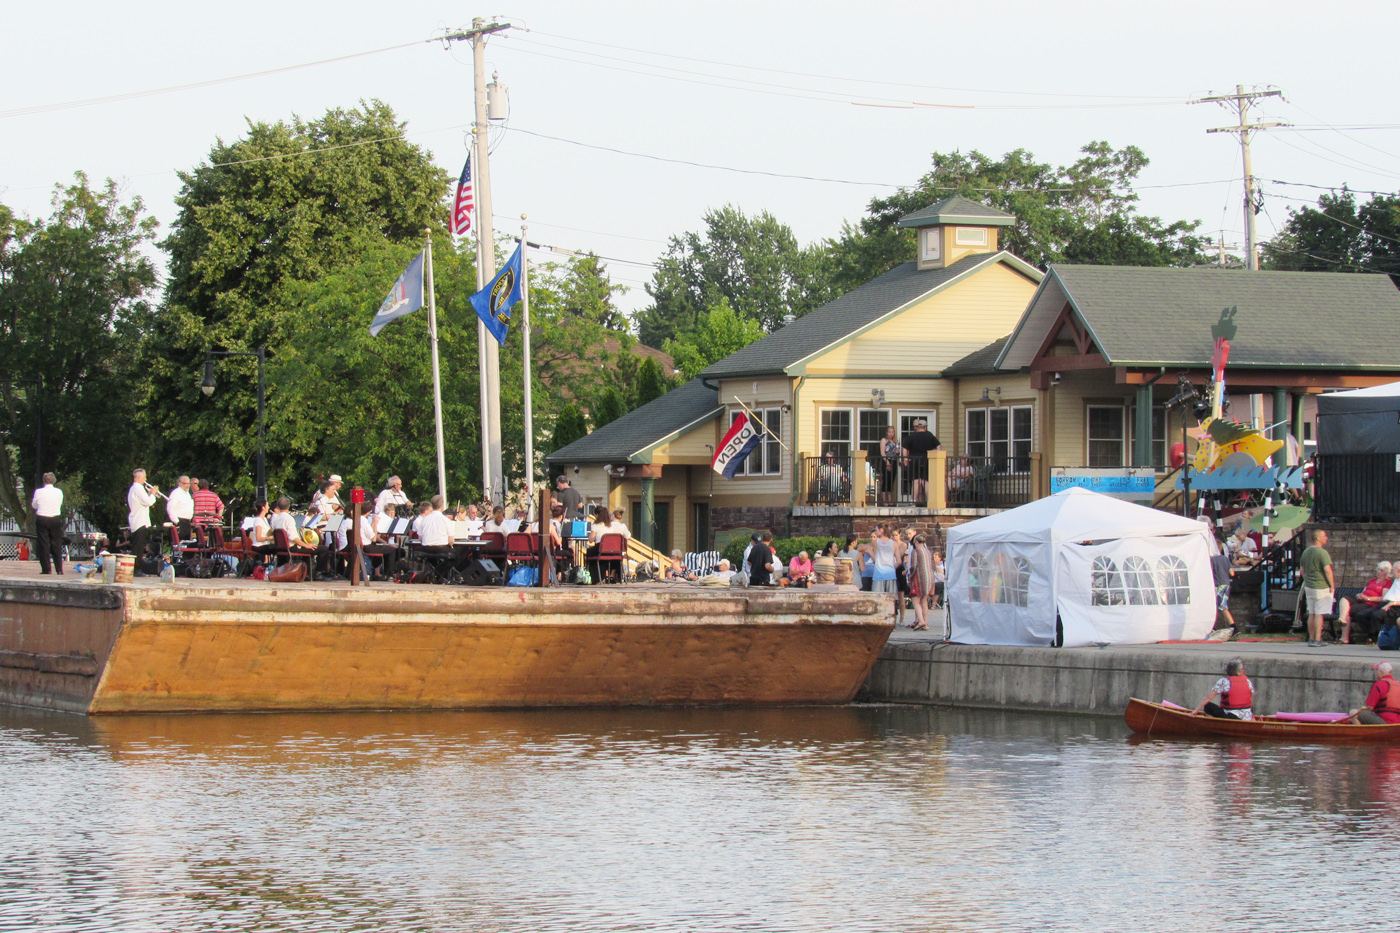 The Albany Symphony performing from a barge in the Erie Canal in Brockport on Saturday, July 7. K. Gabalski photo